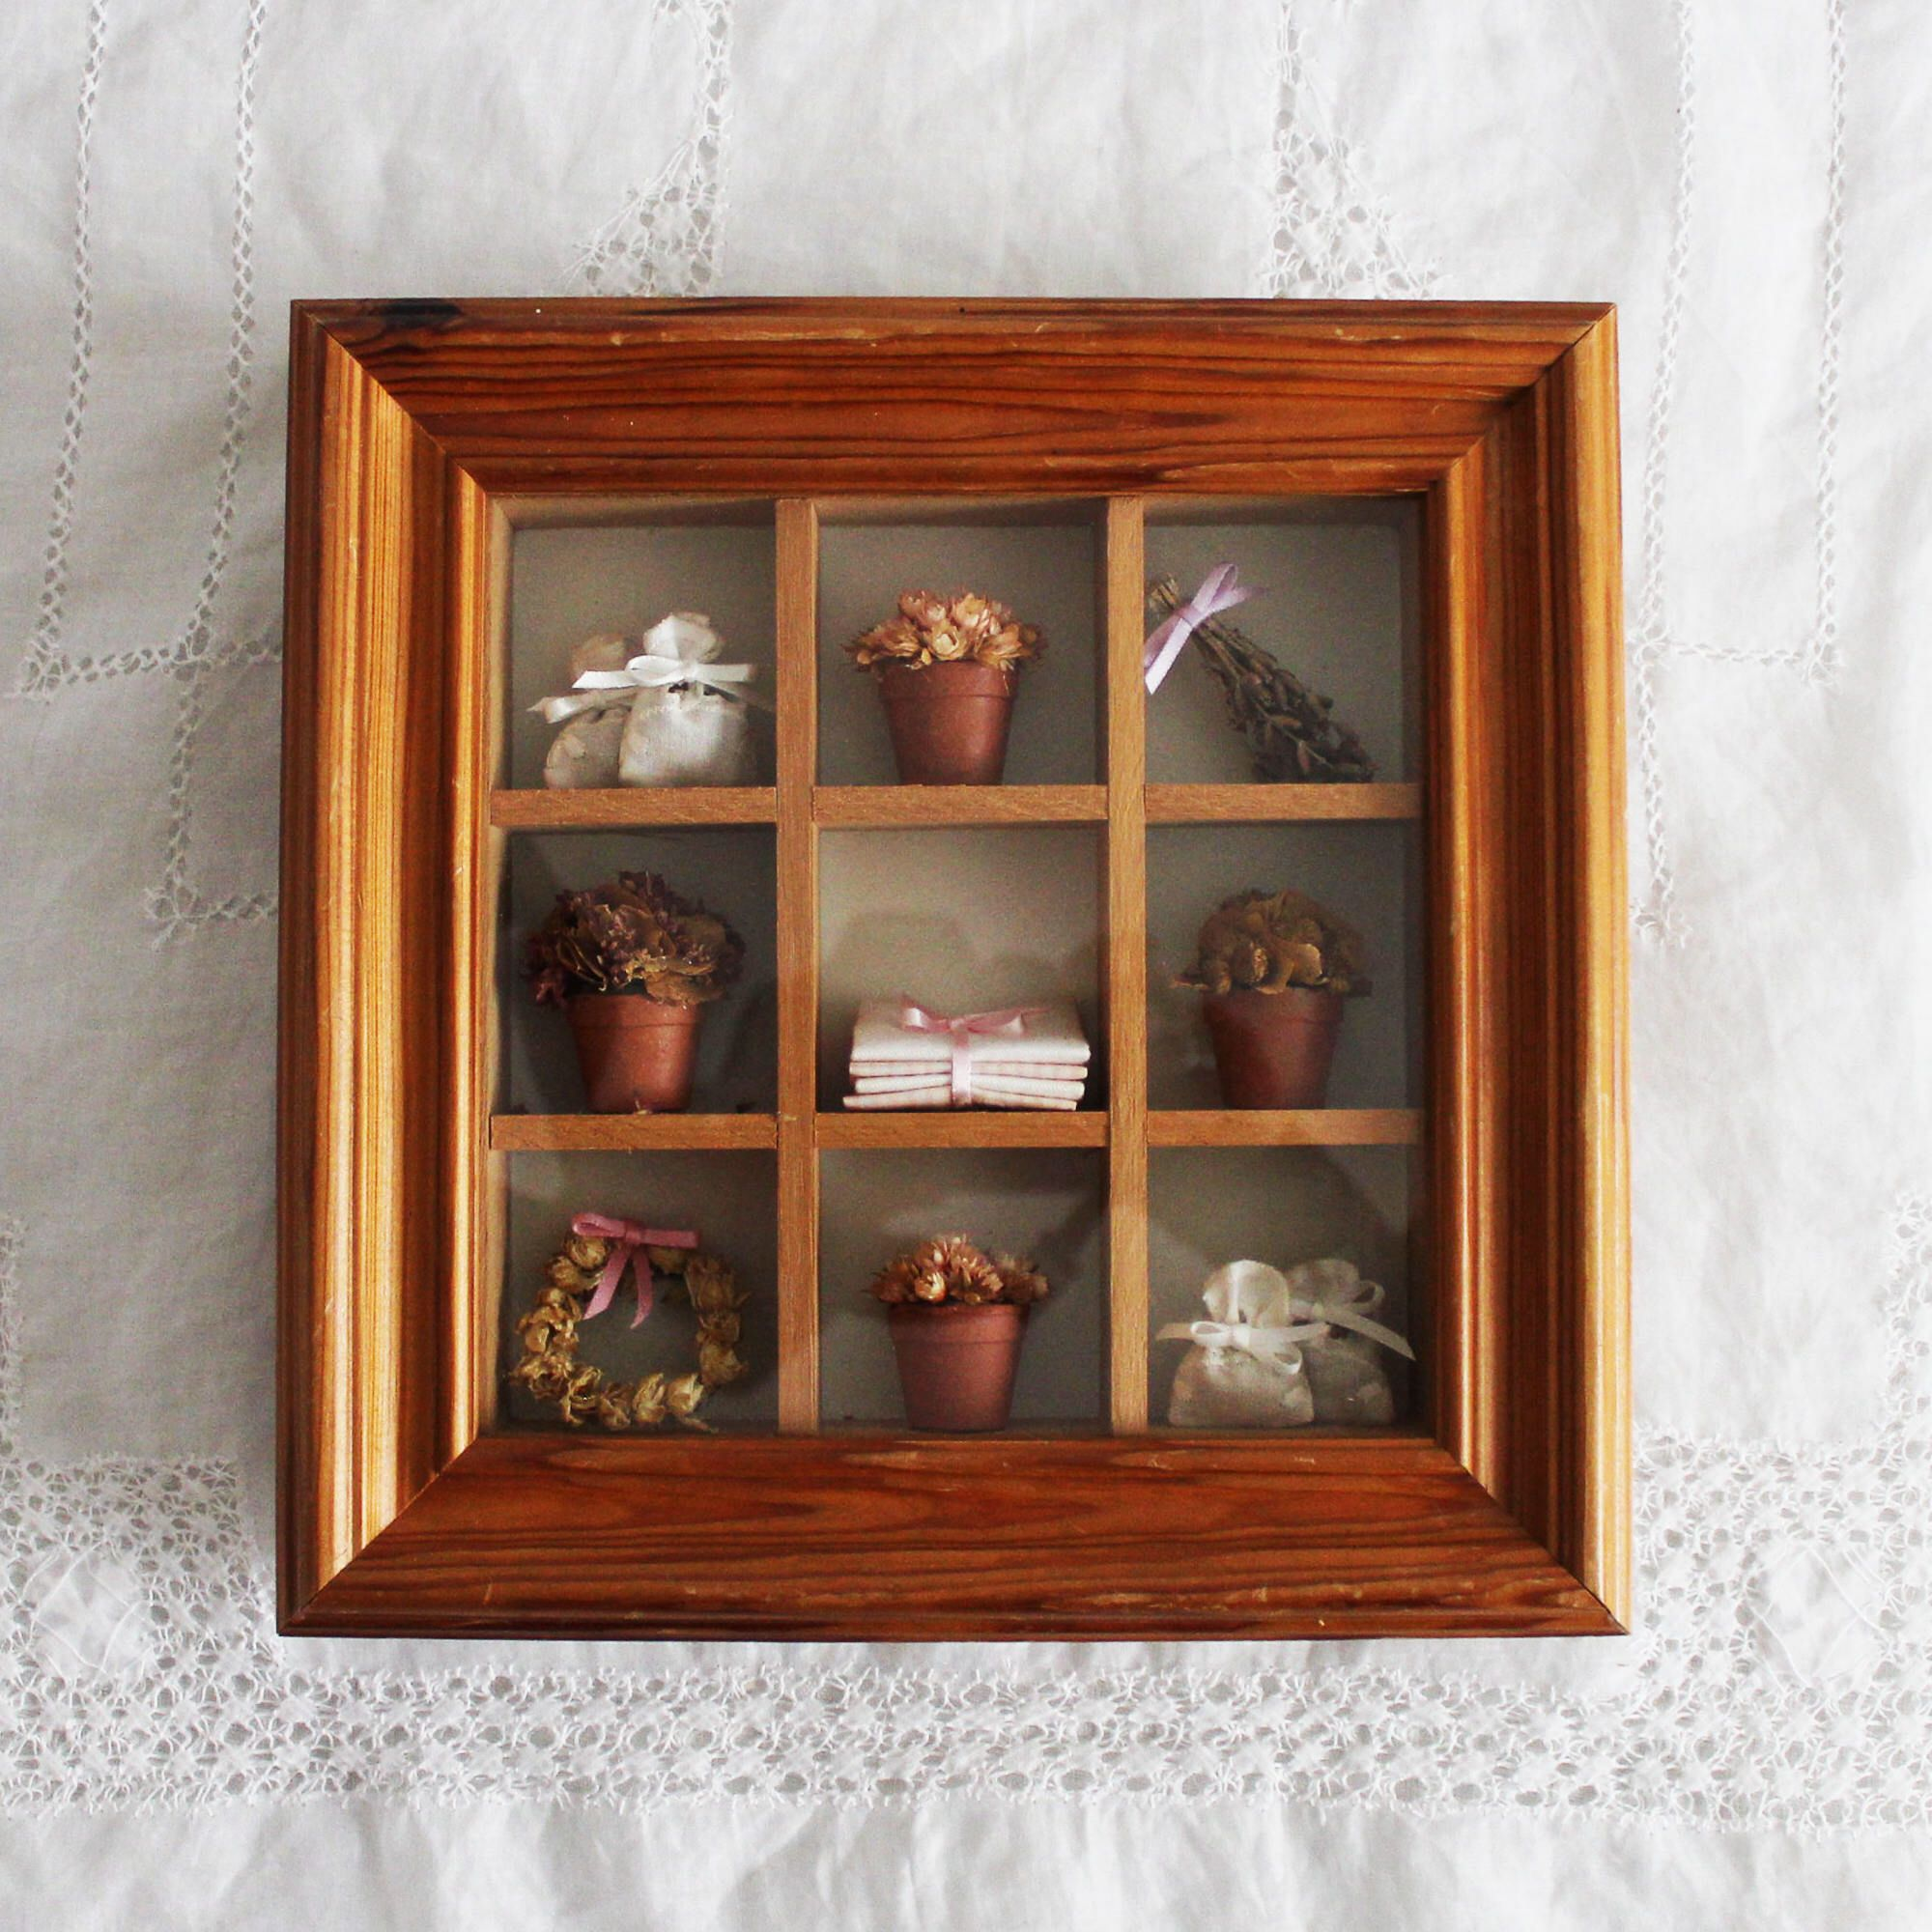 Vintage miniature framed diorama curio cabinet display wall